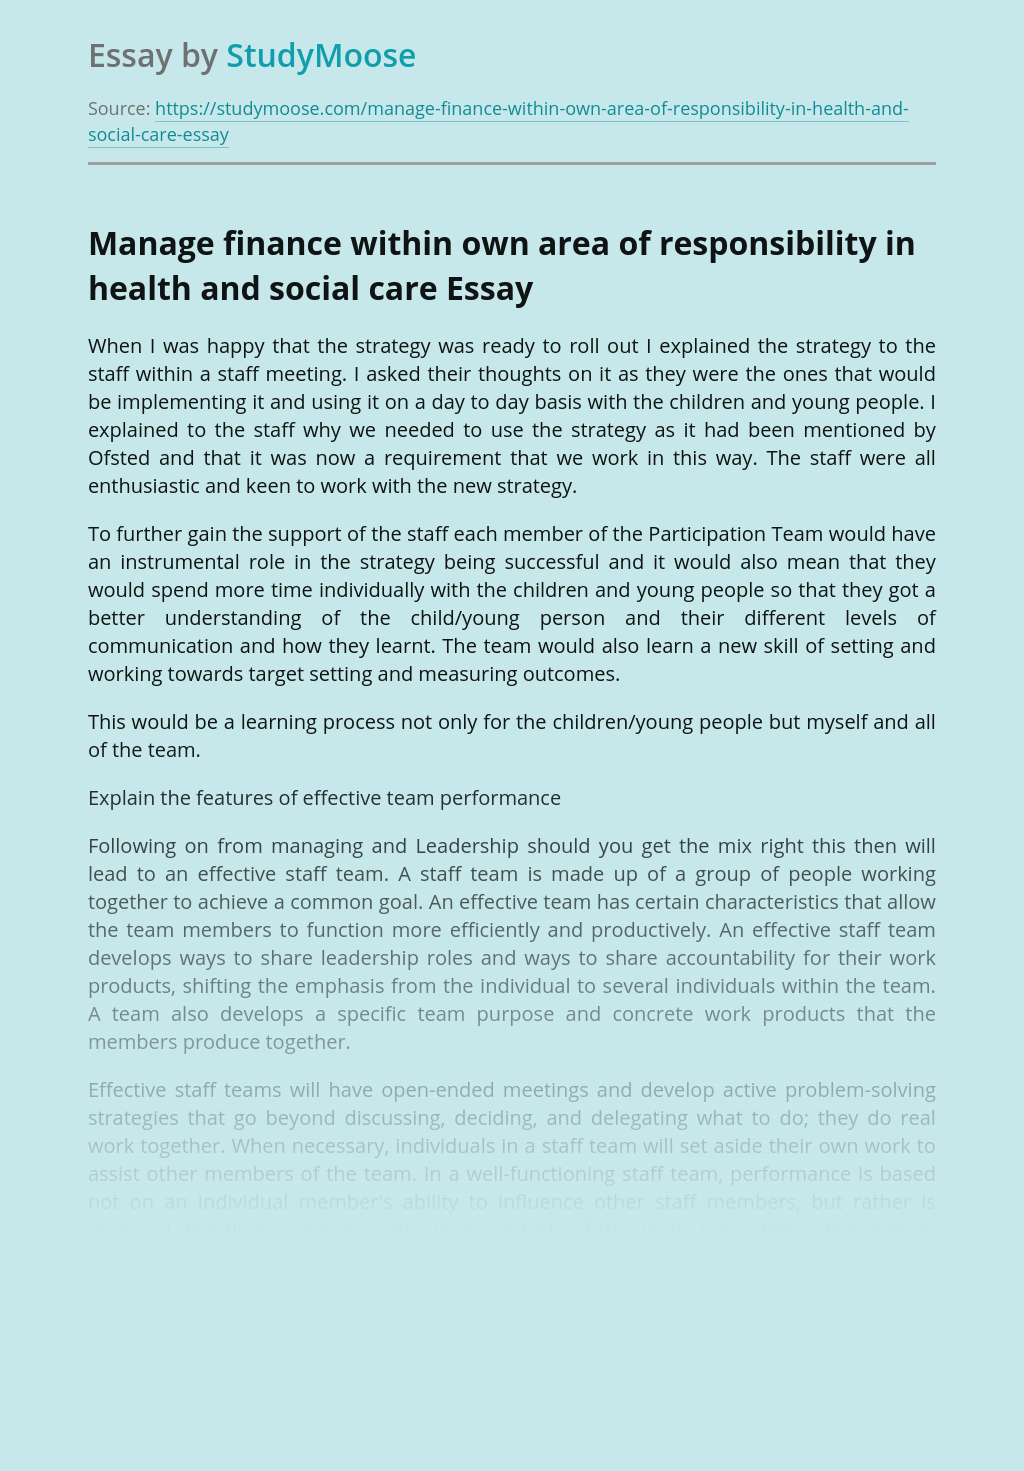 Manage finance within own area of responsibility in health and social care